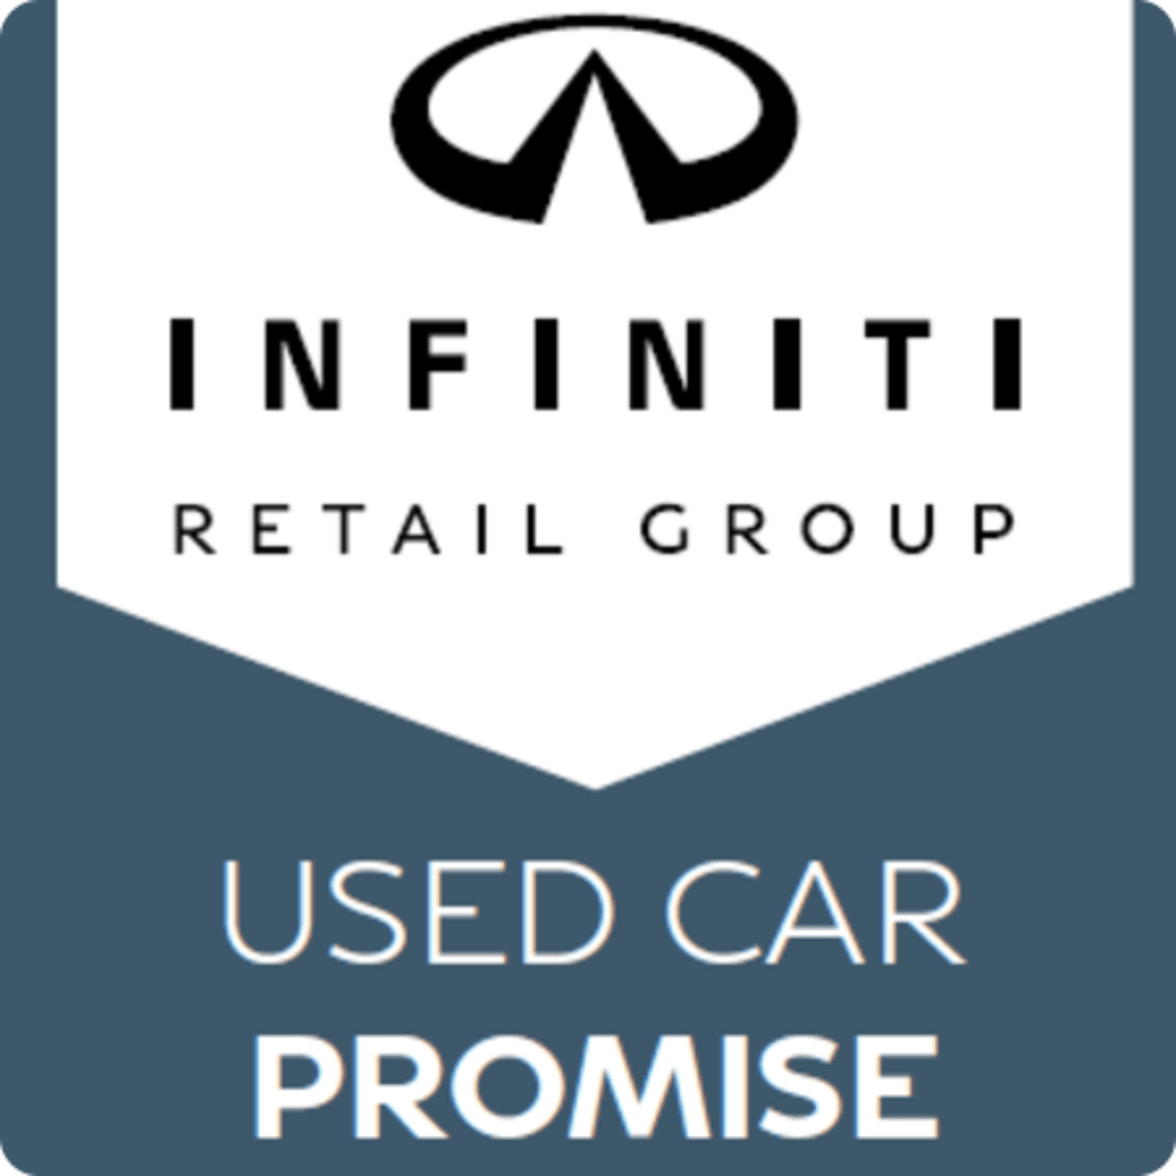 All Used Cars Infiniti Retail Group